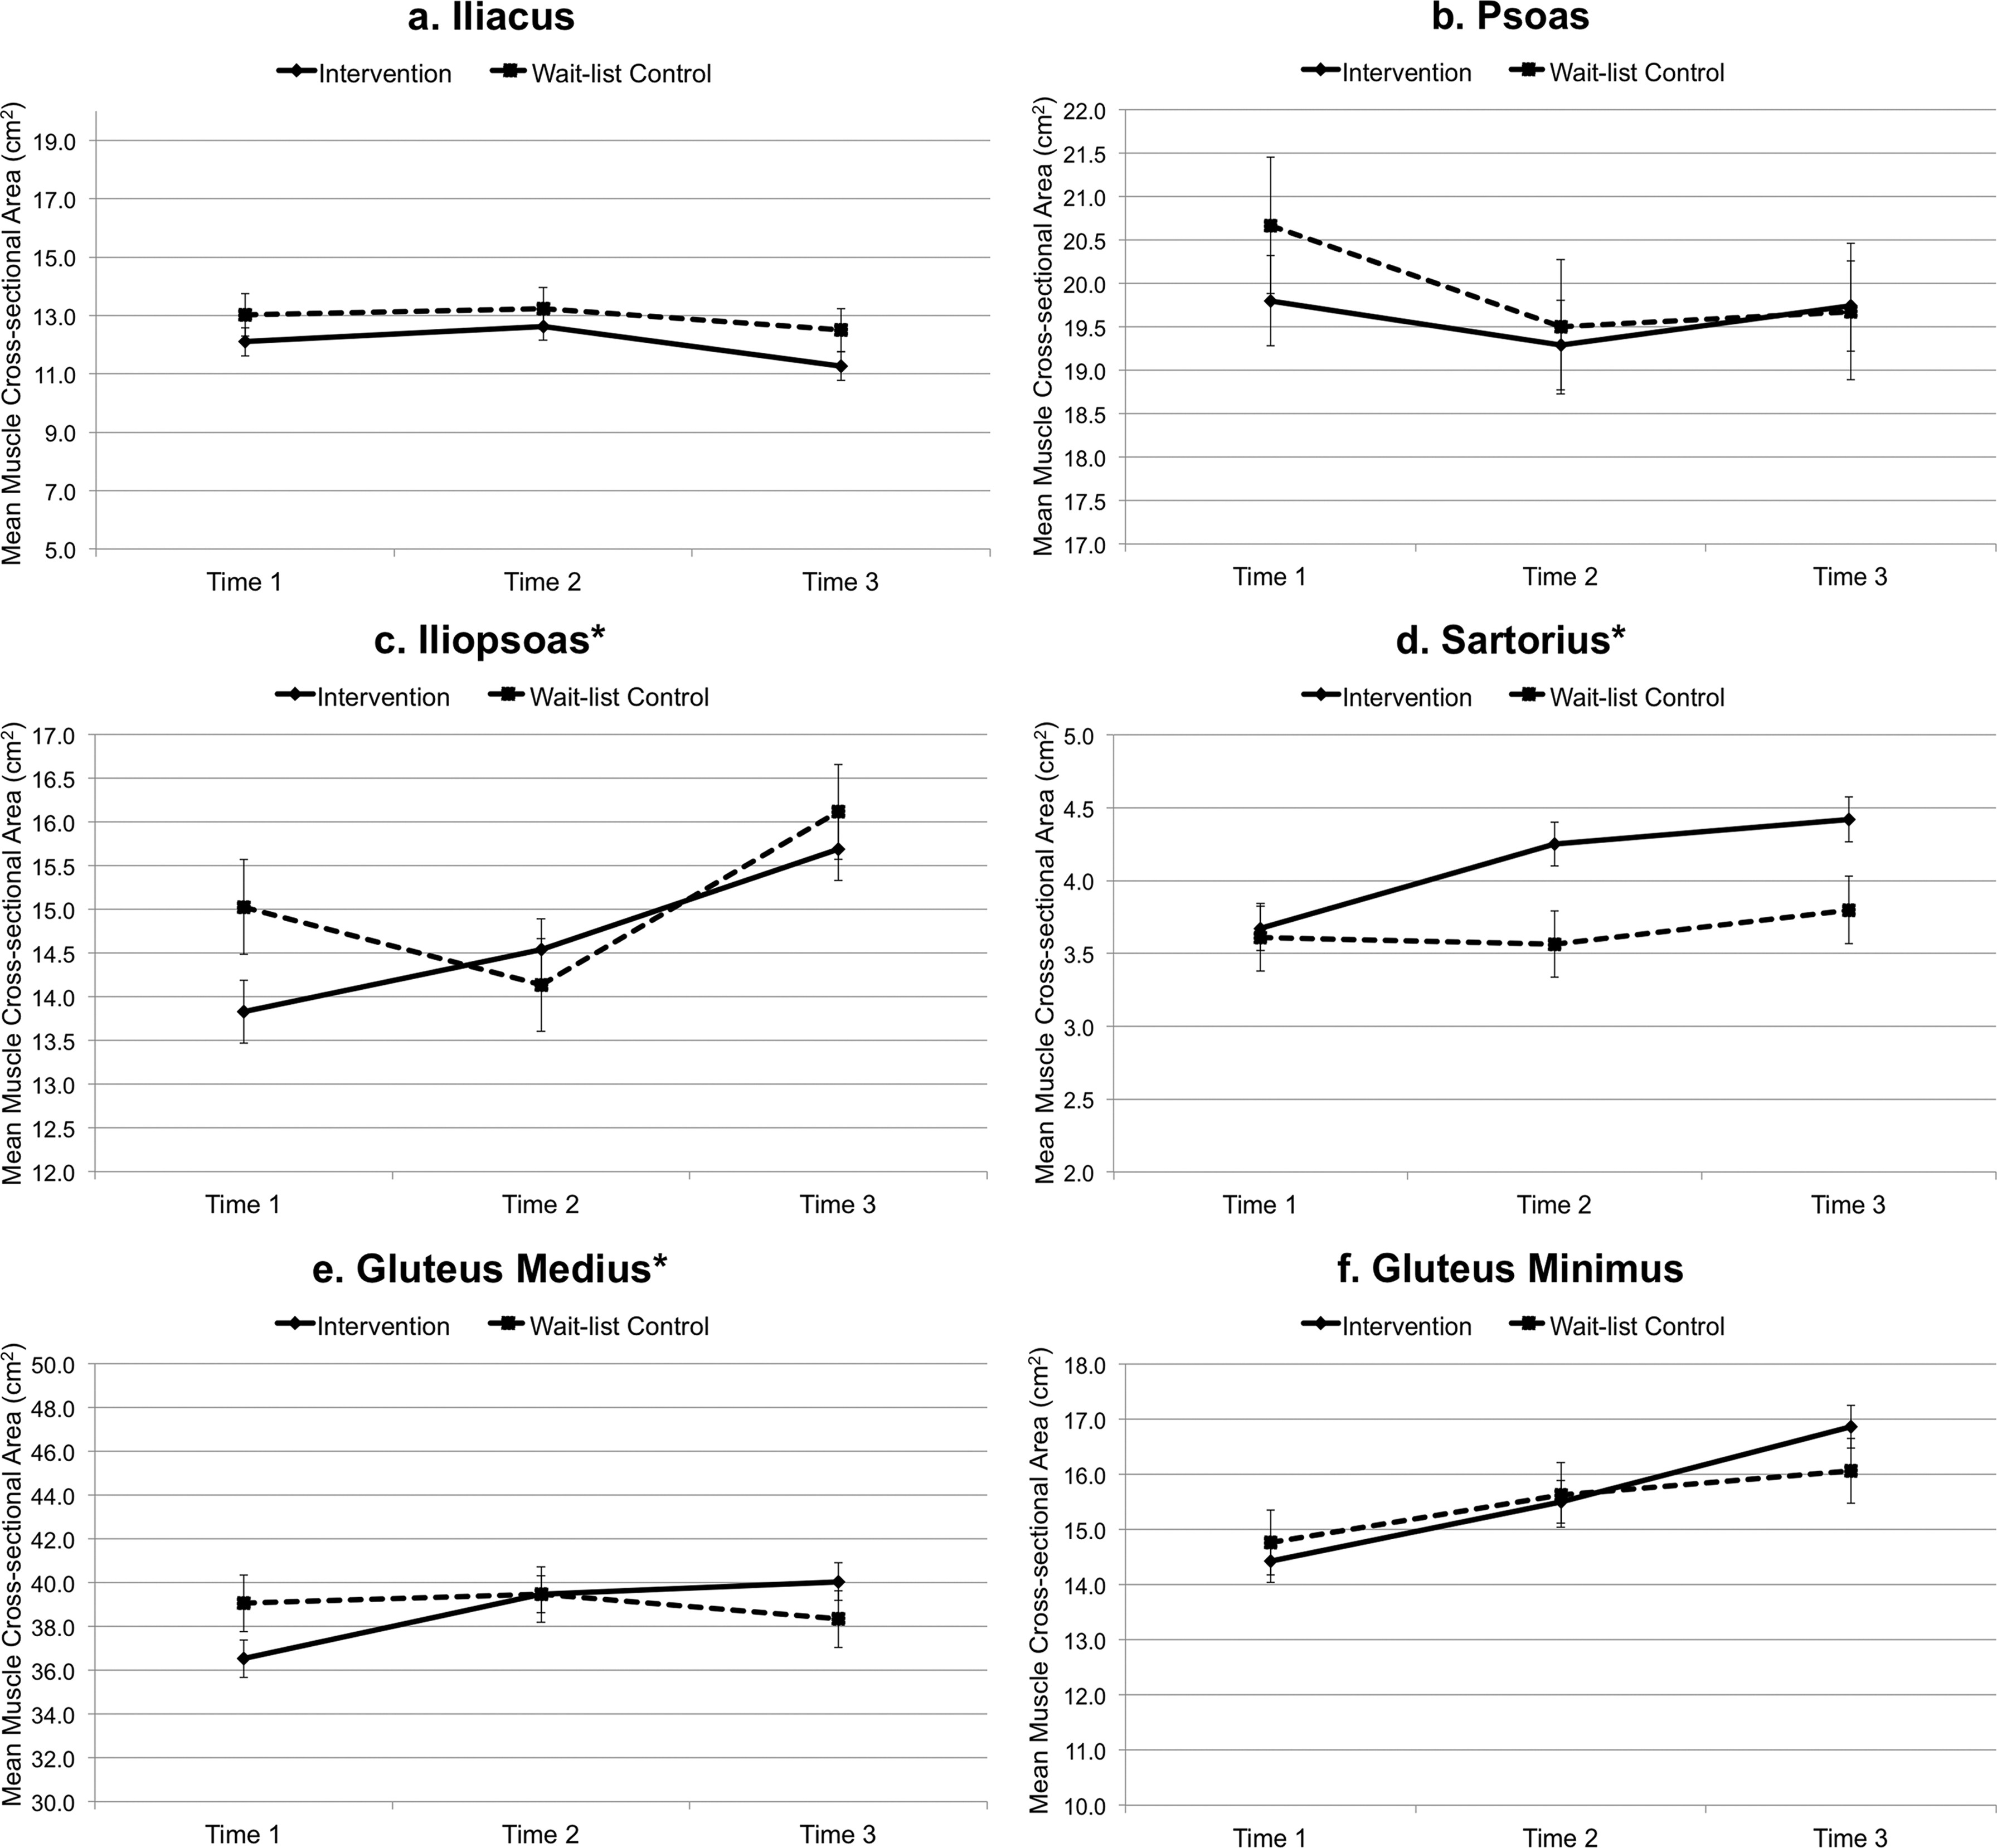 Effect Of Motor Control Training On Hip Muscles In Elite Football Players With And Without Low